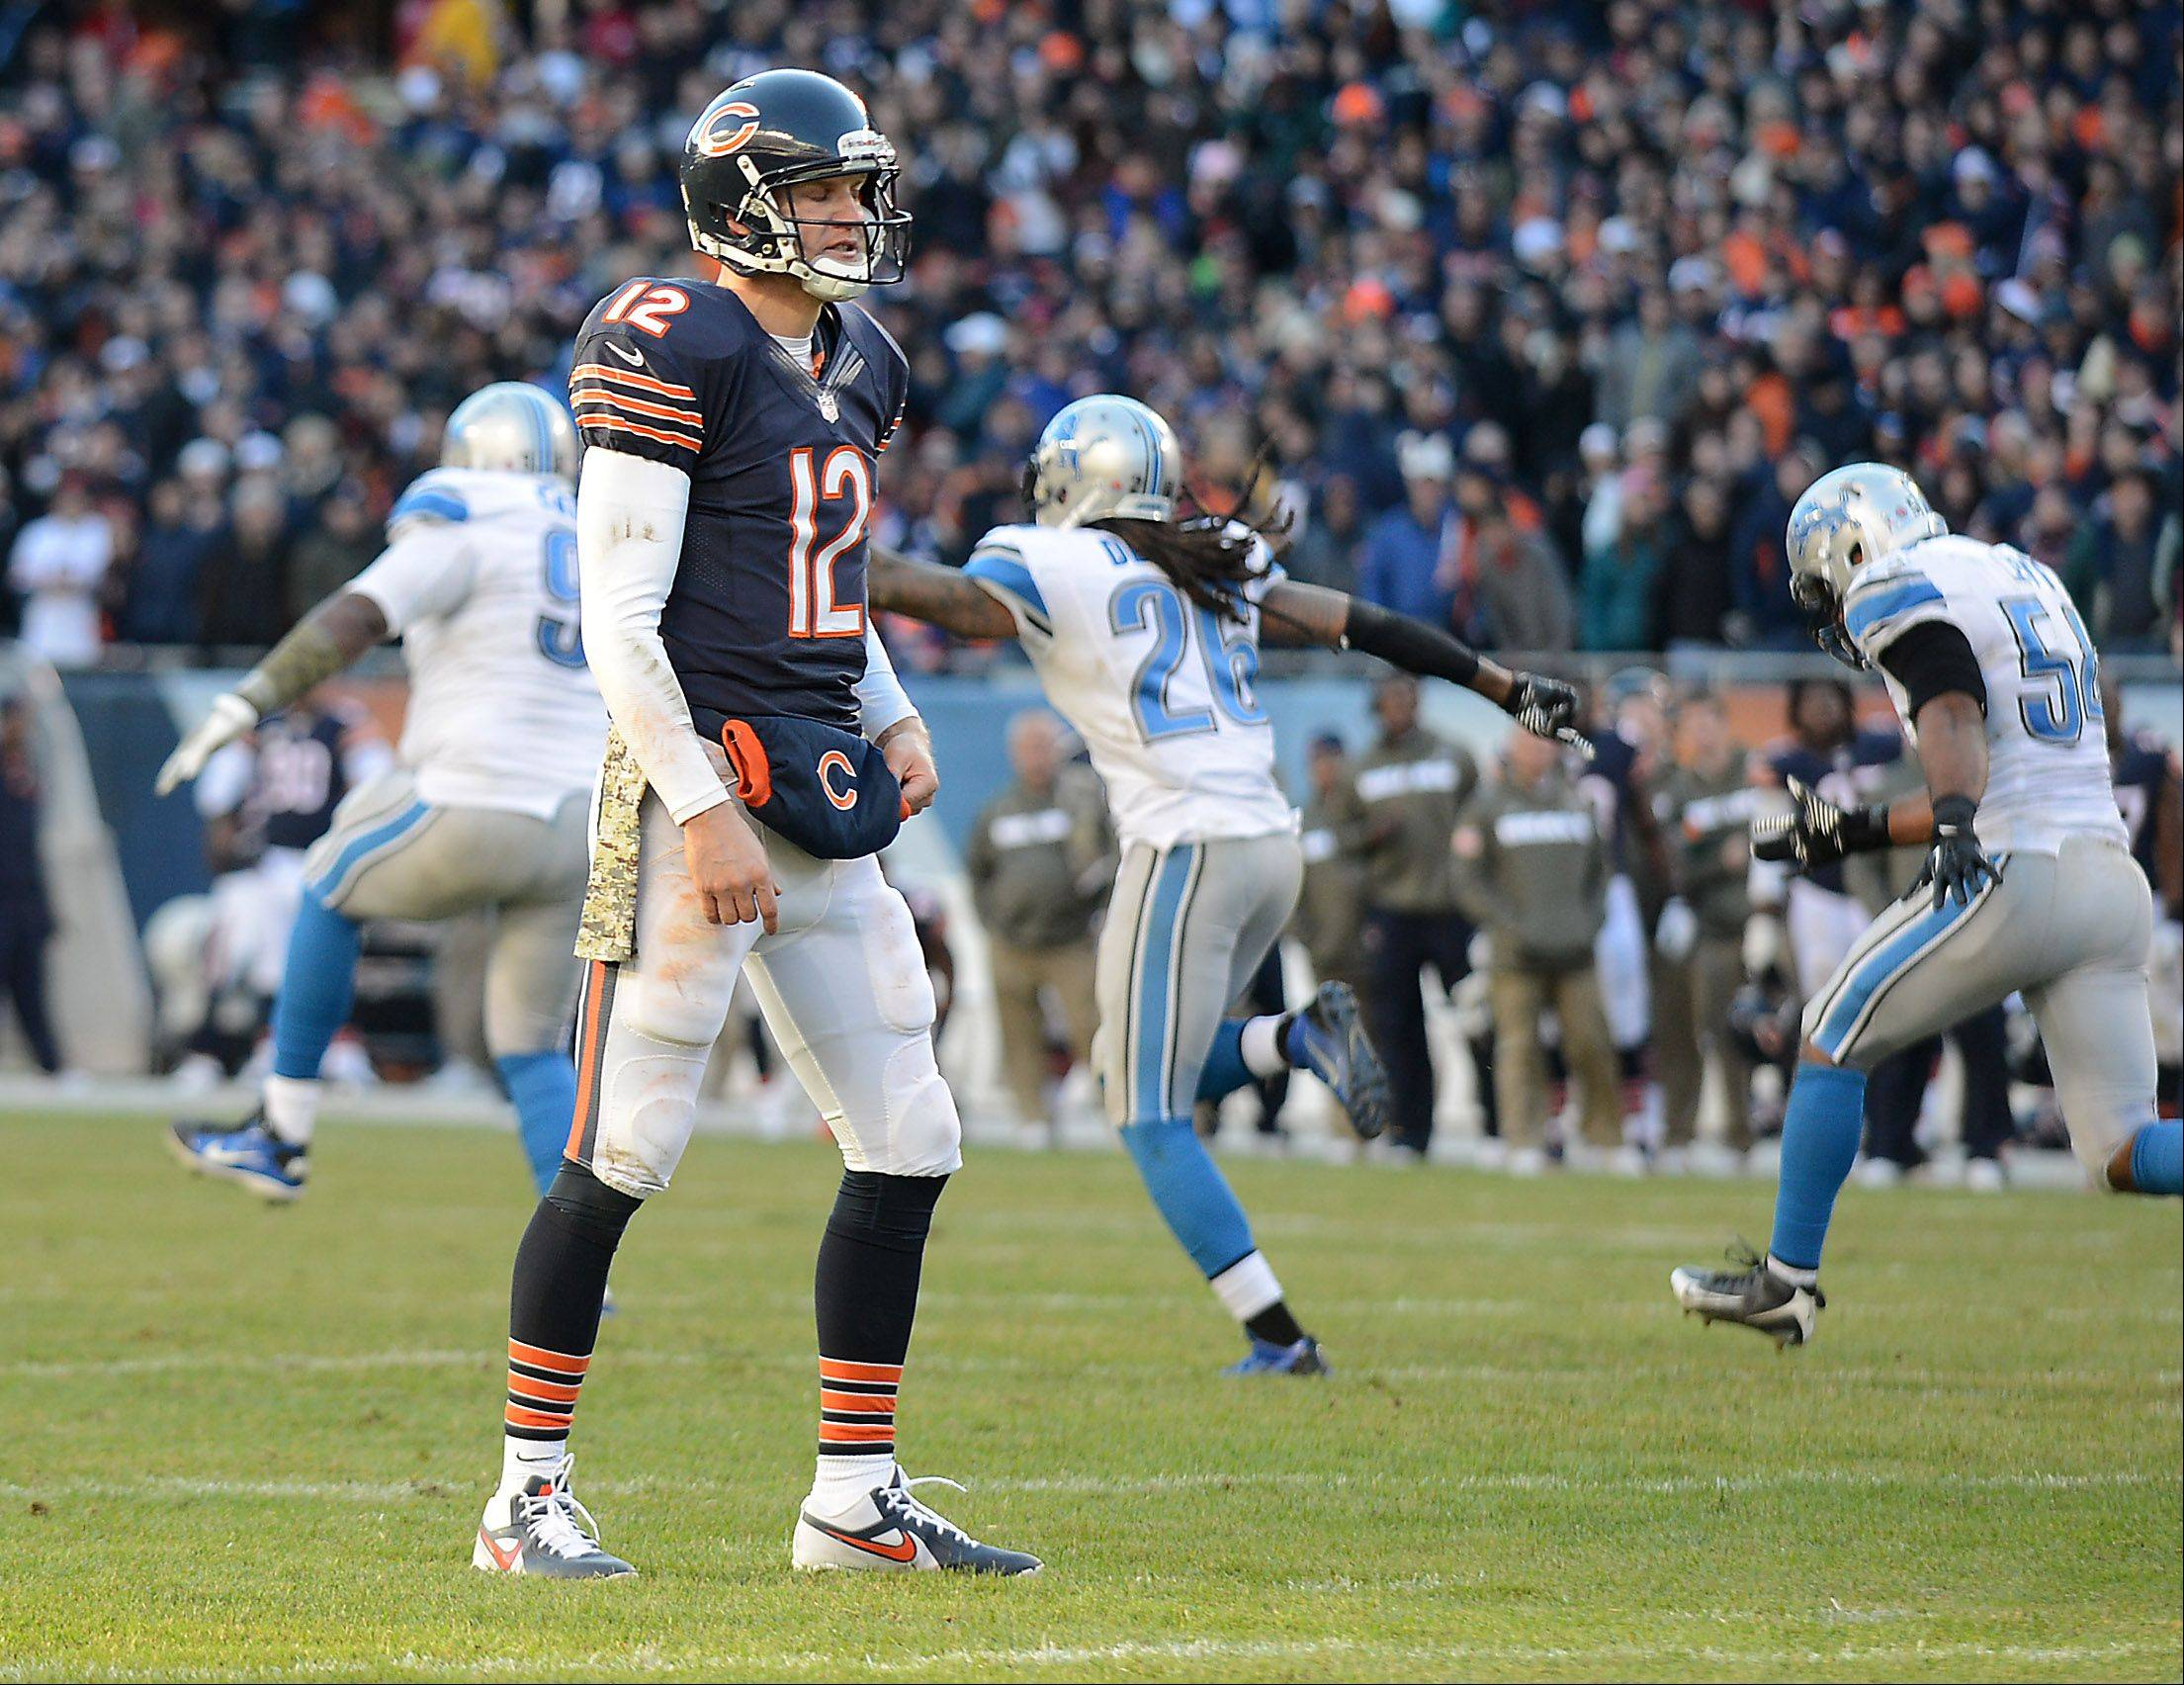 Chicago Bears quarterback Josh McCown (12) and the Detroit Lions defense react after the Bears failed on a two-point conversion attempt in the final minute during Sunday�s game in Chicago.